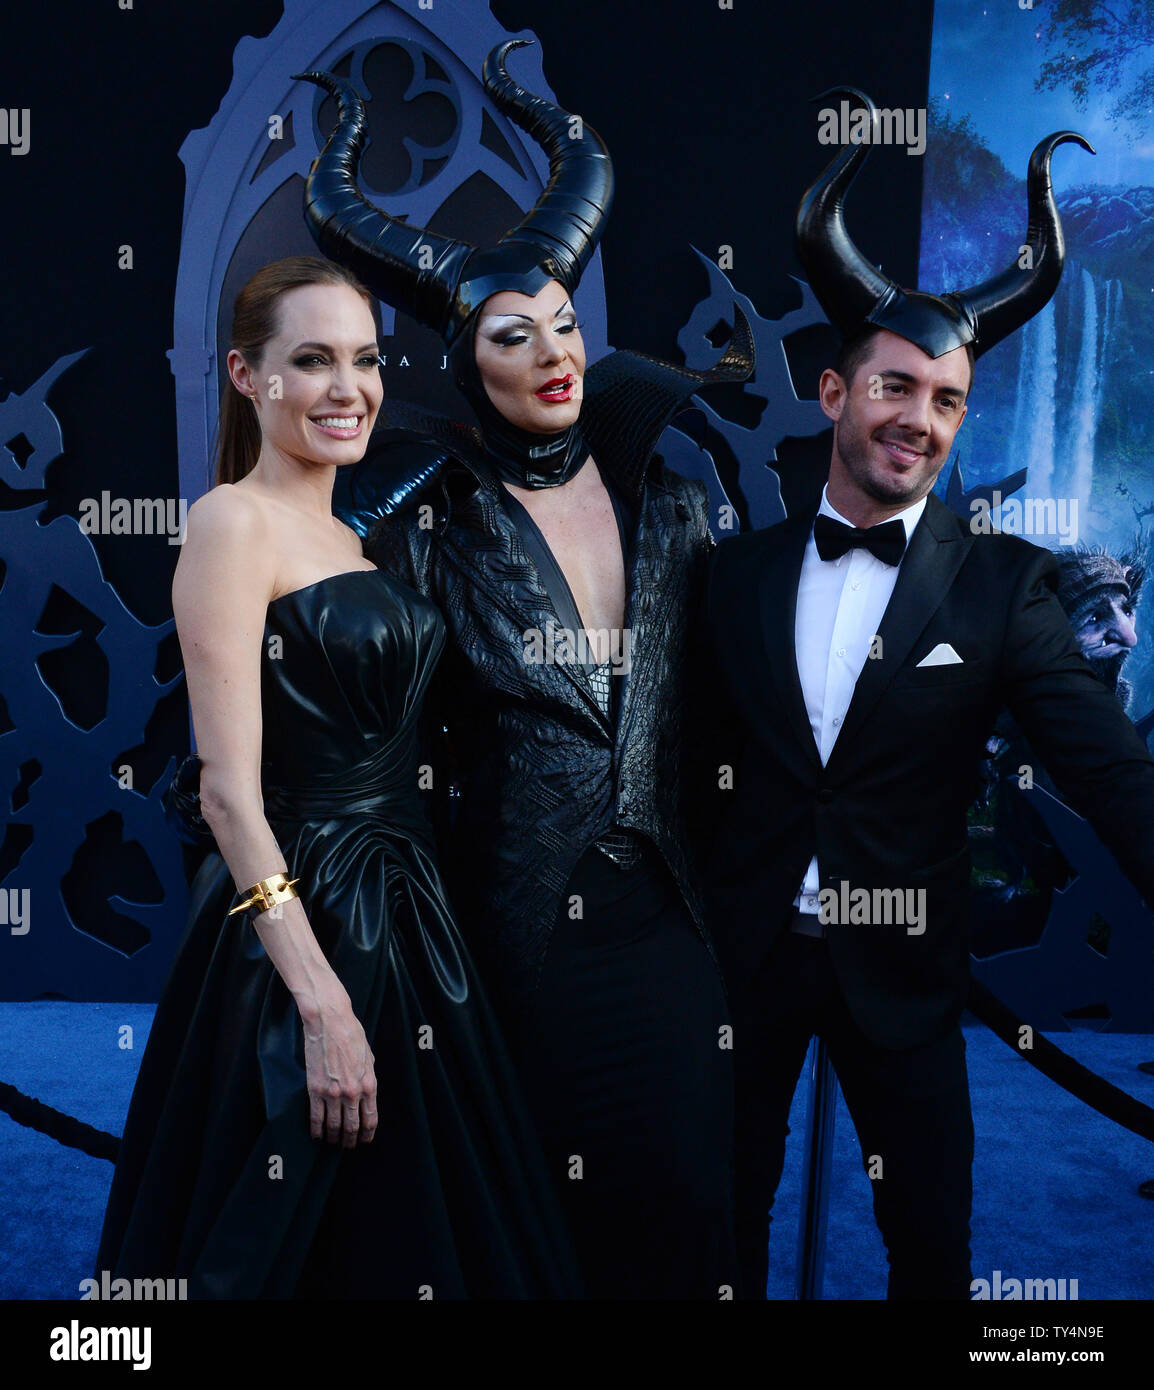 Cast Member Angelina Jolie L Attends The Premiere Of The